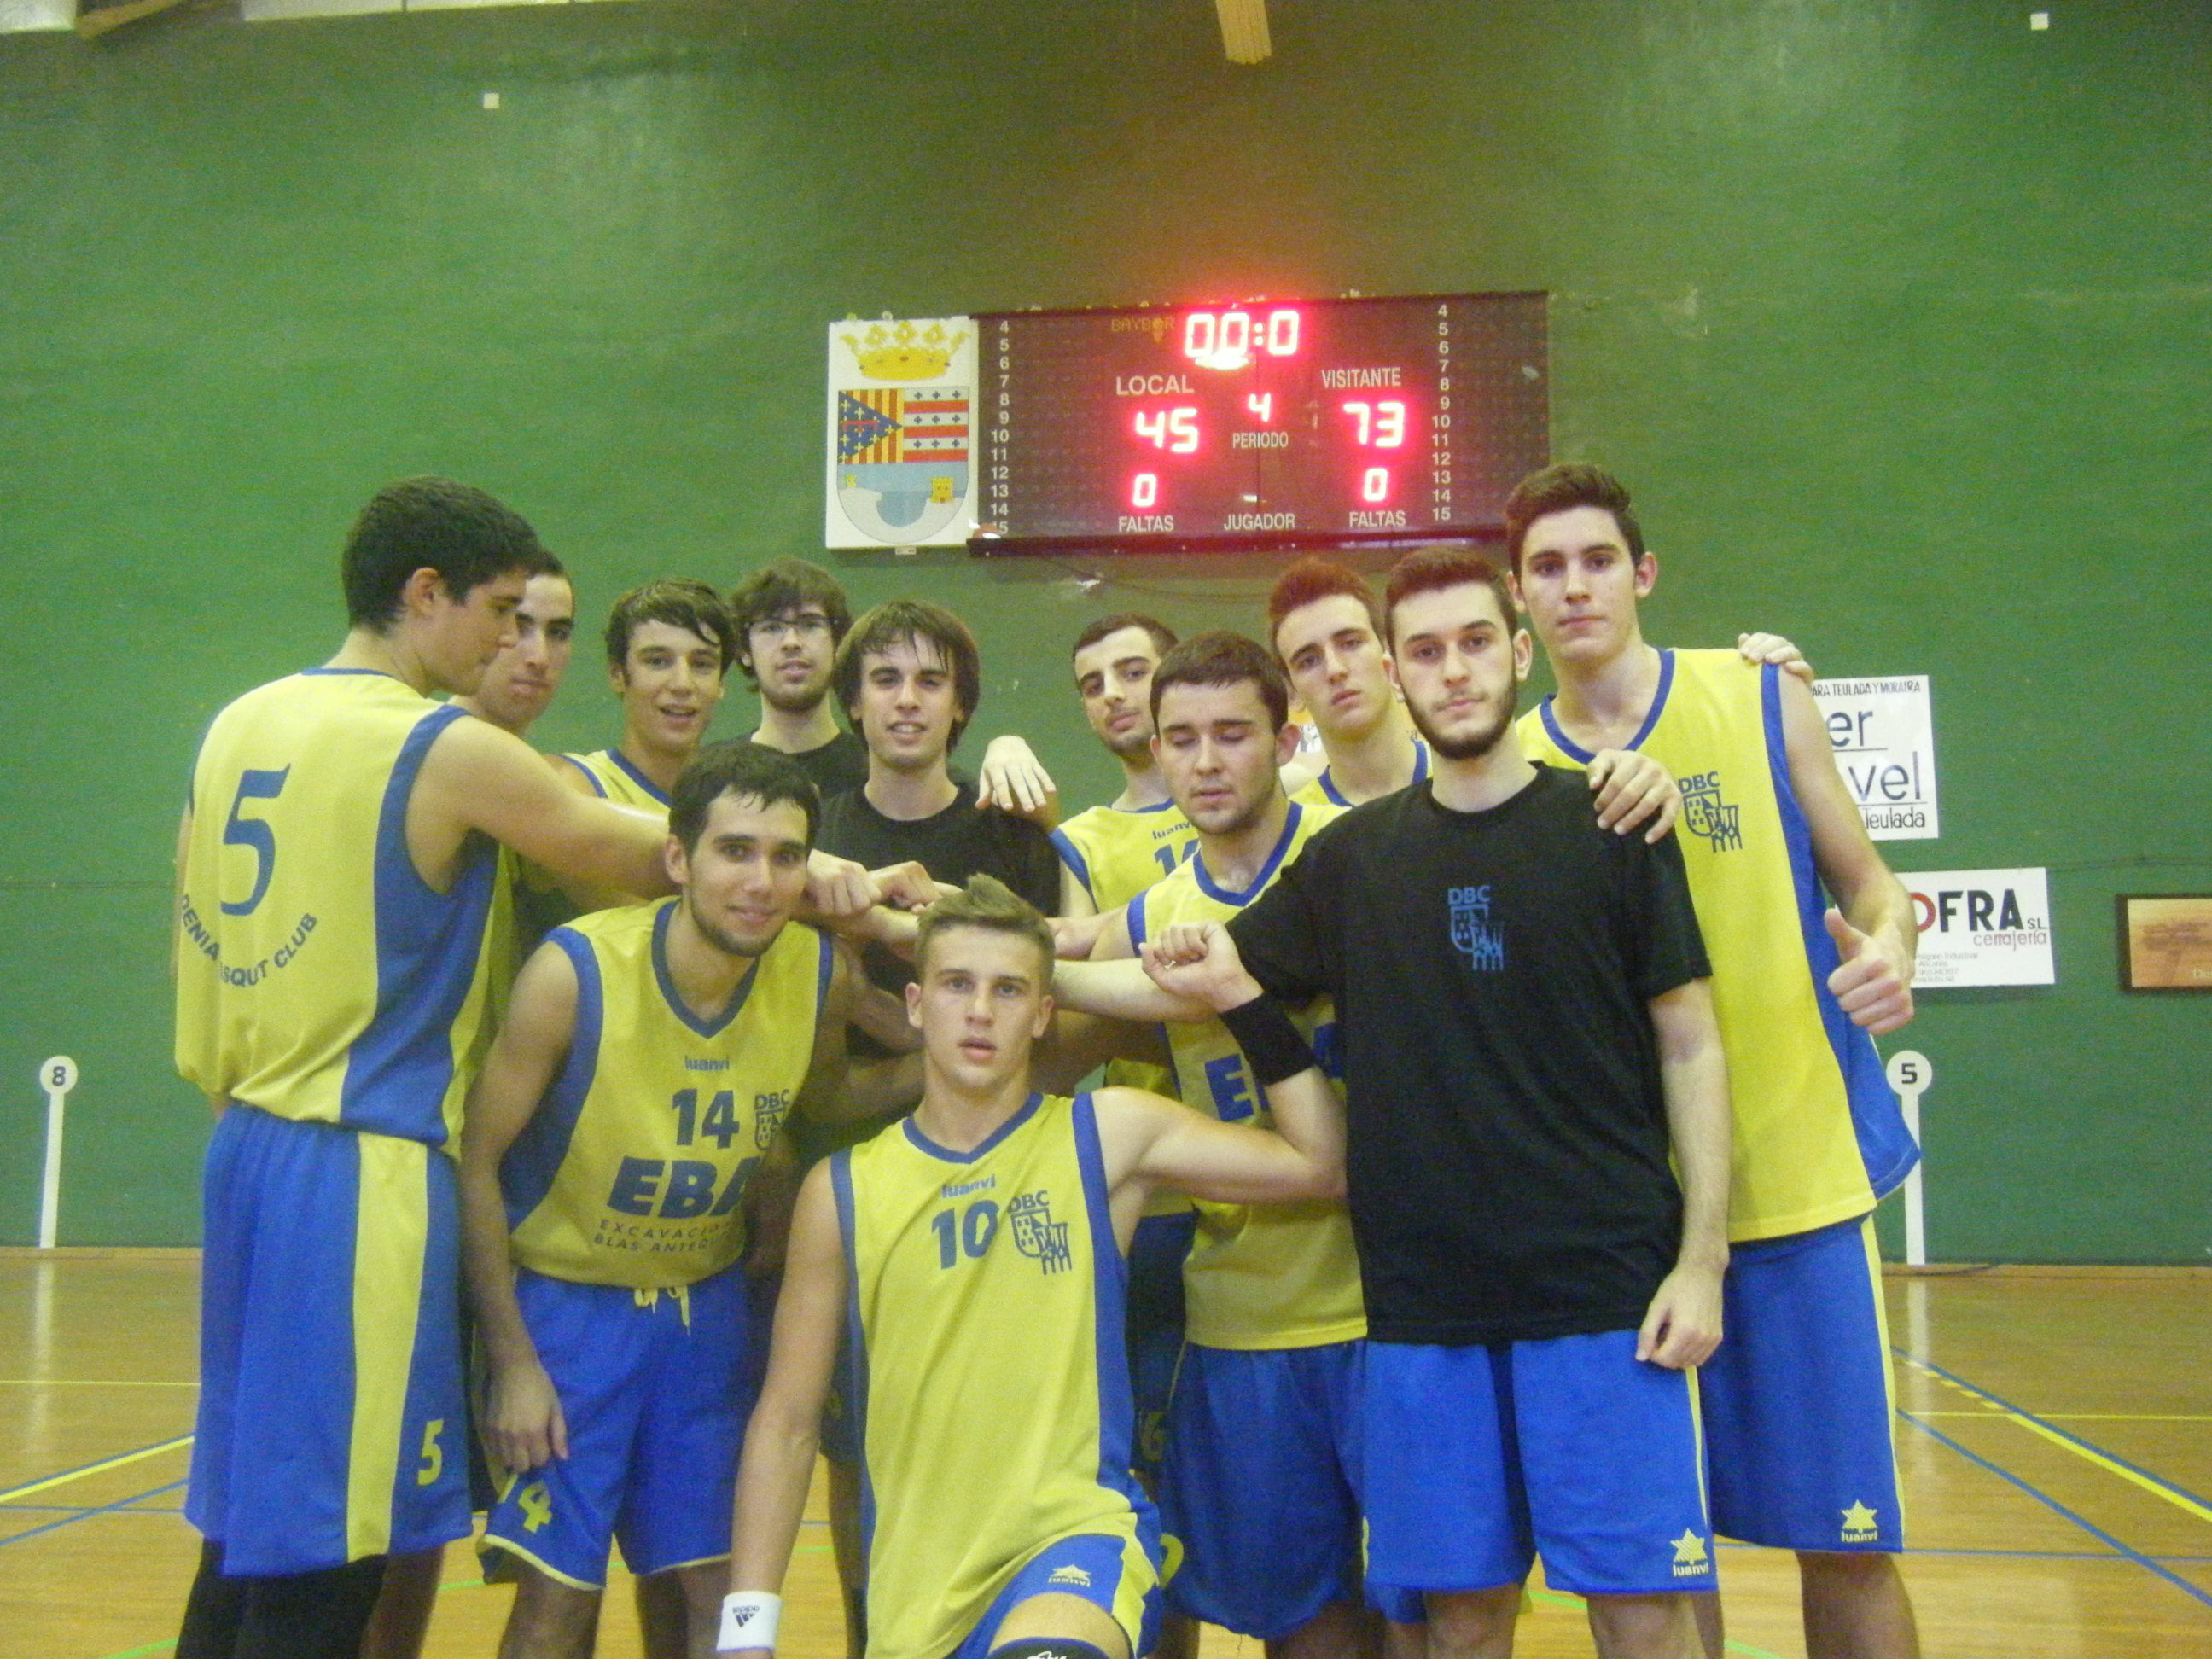 Dénia 21 Sub Basketball League is unstoppable